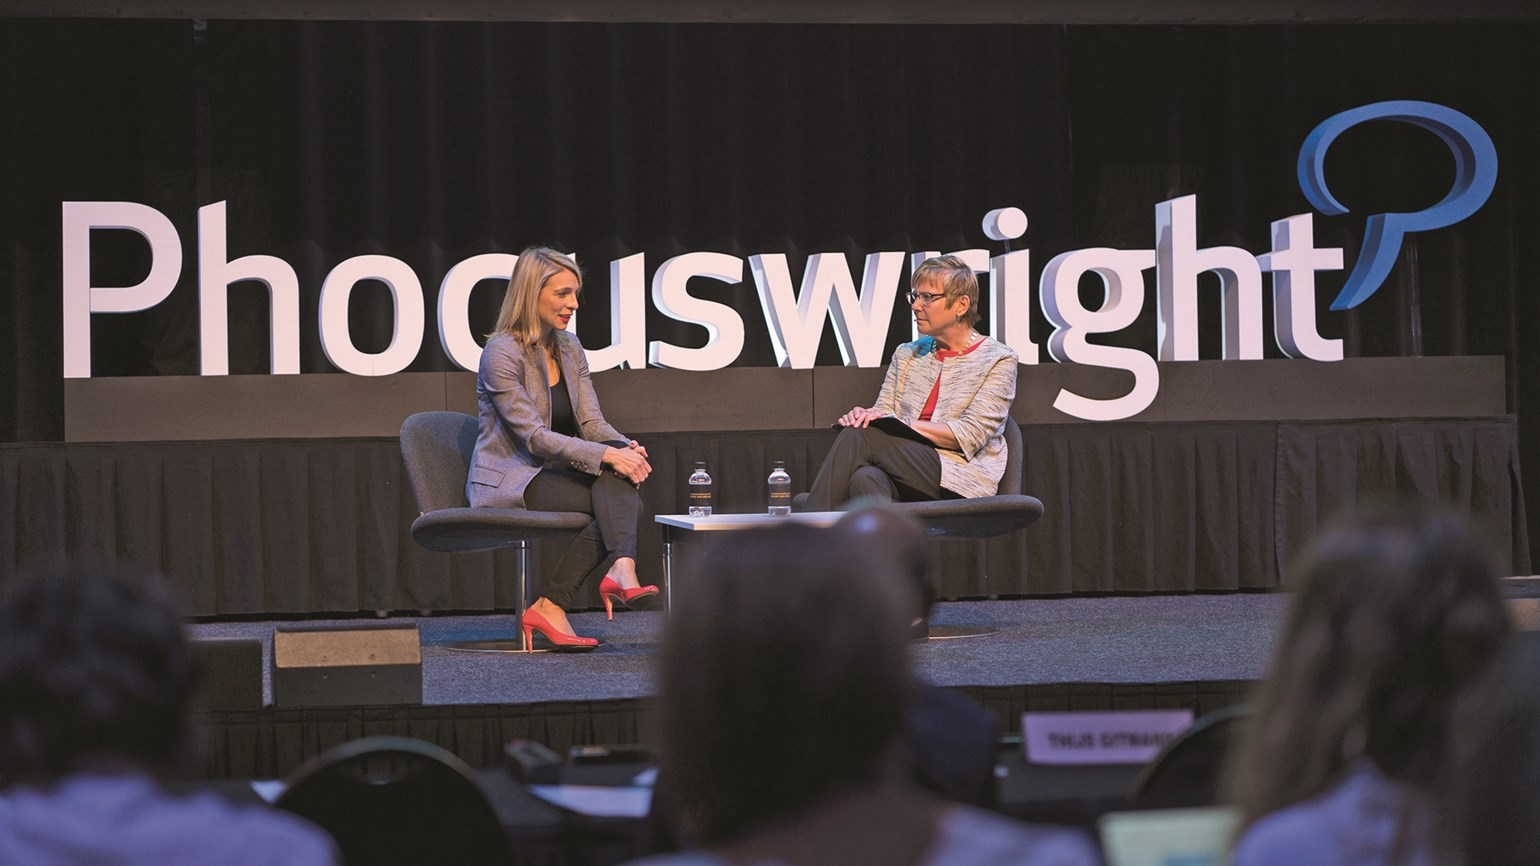 Phocuswright event explores challenges unique to Europe